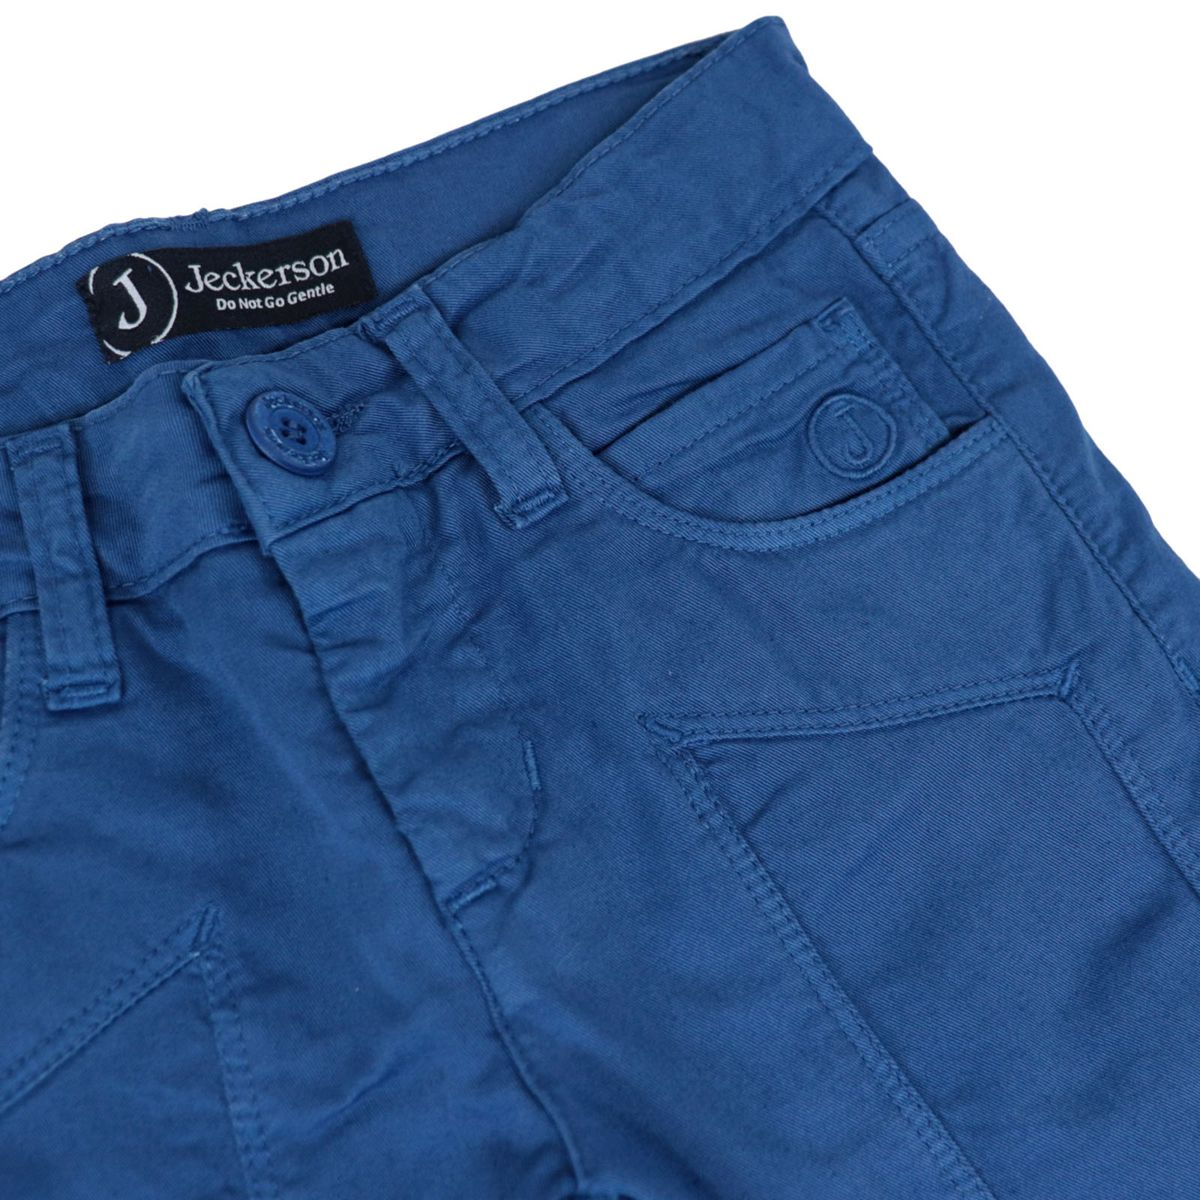 Trousers with 5 pockets in gabardine with patch Royal Jeckerson